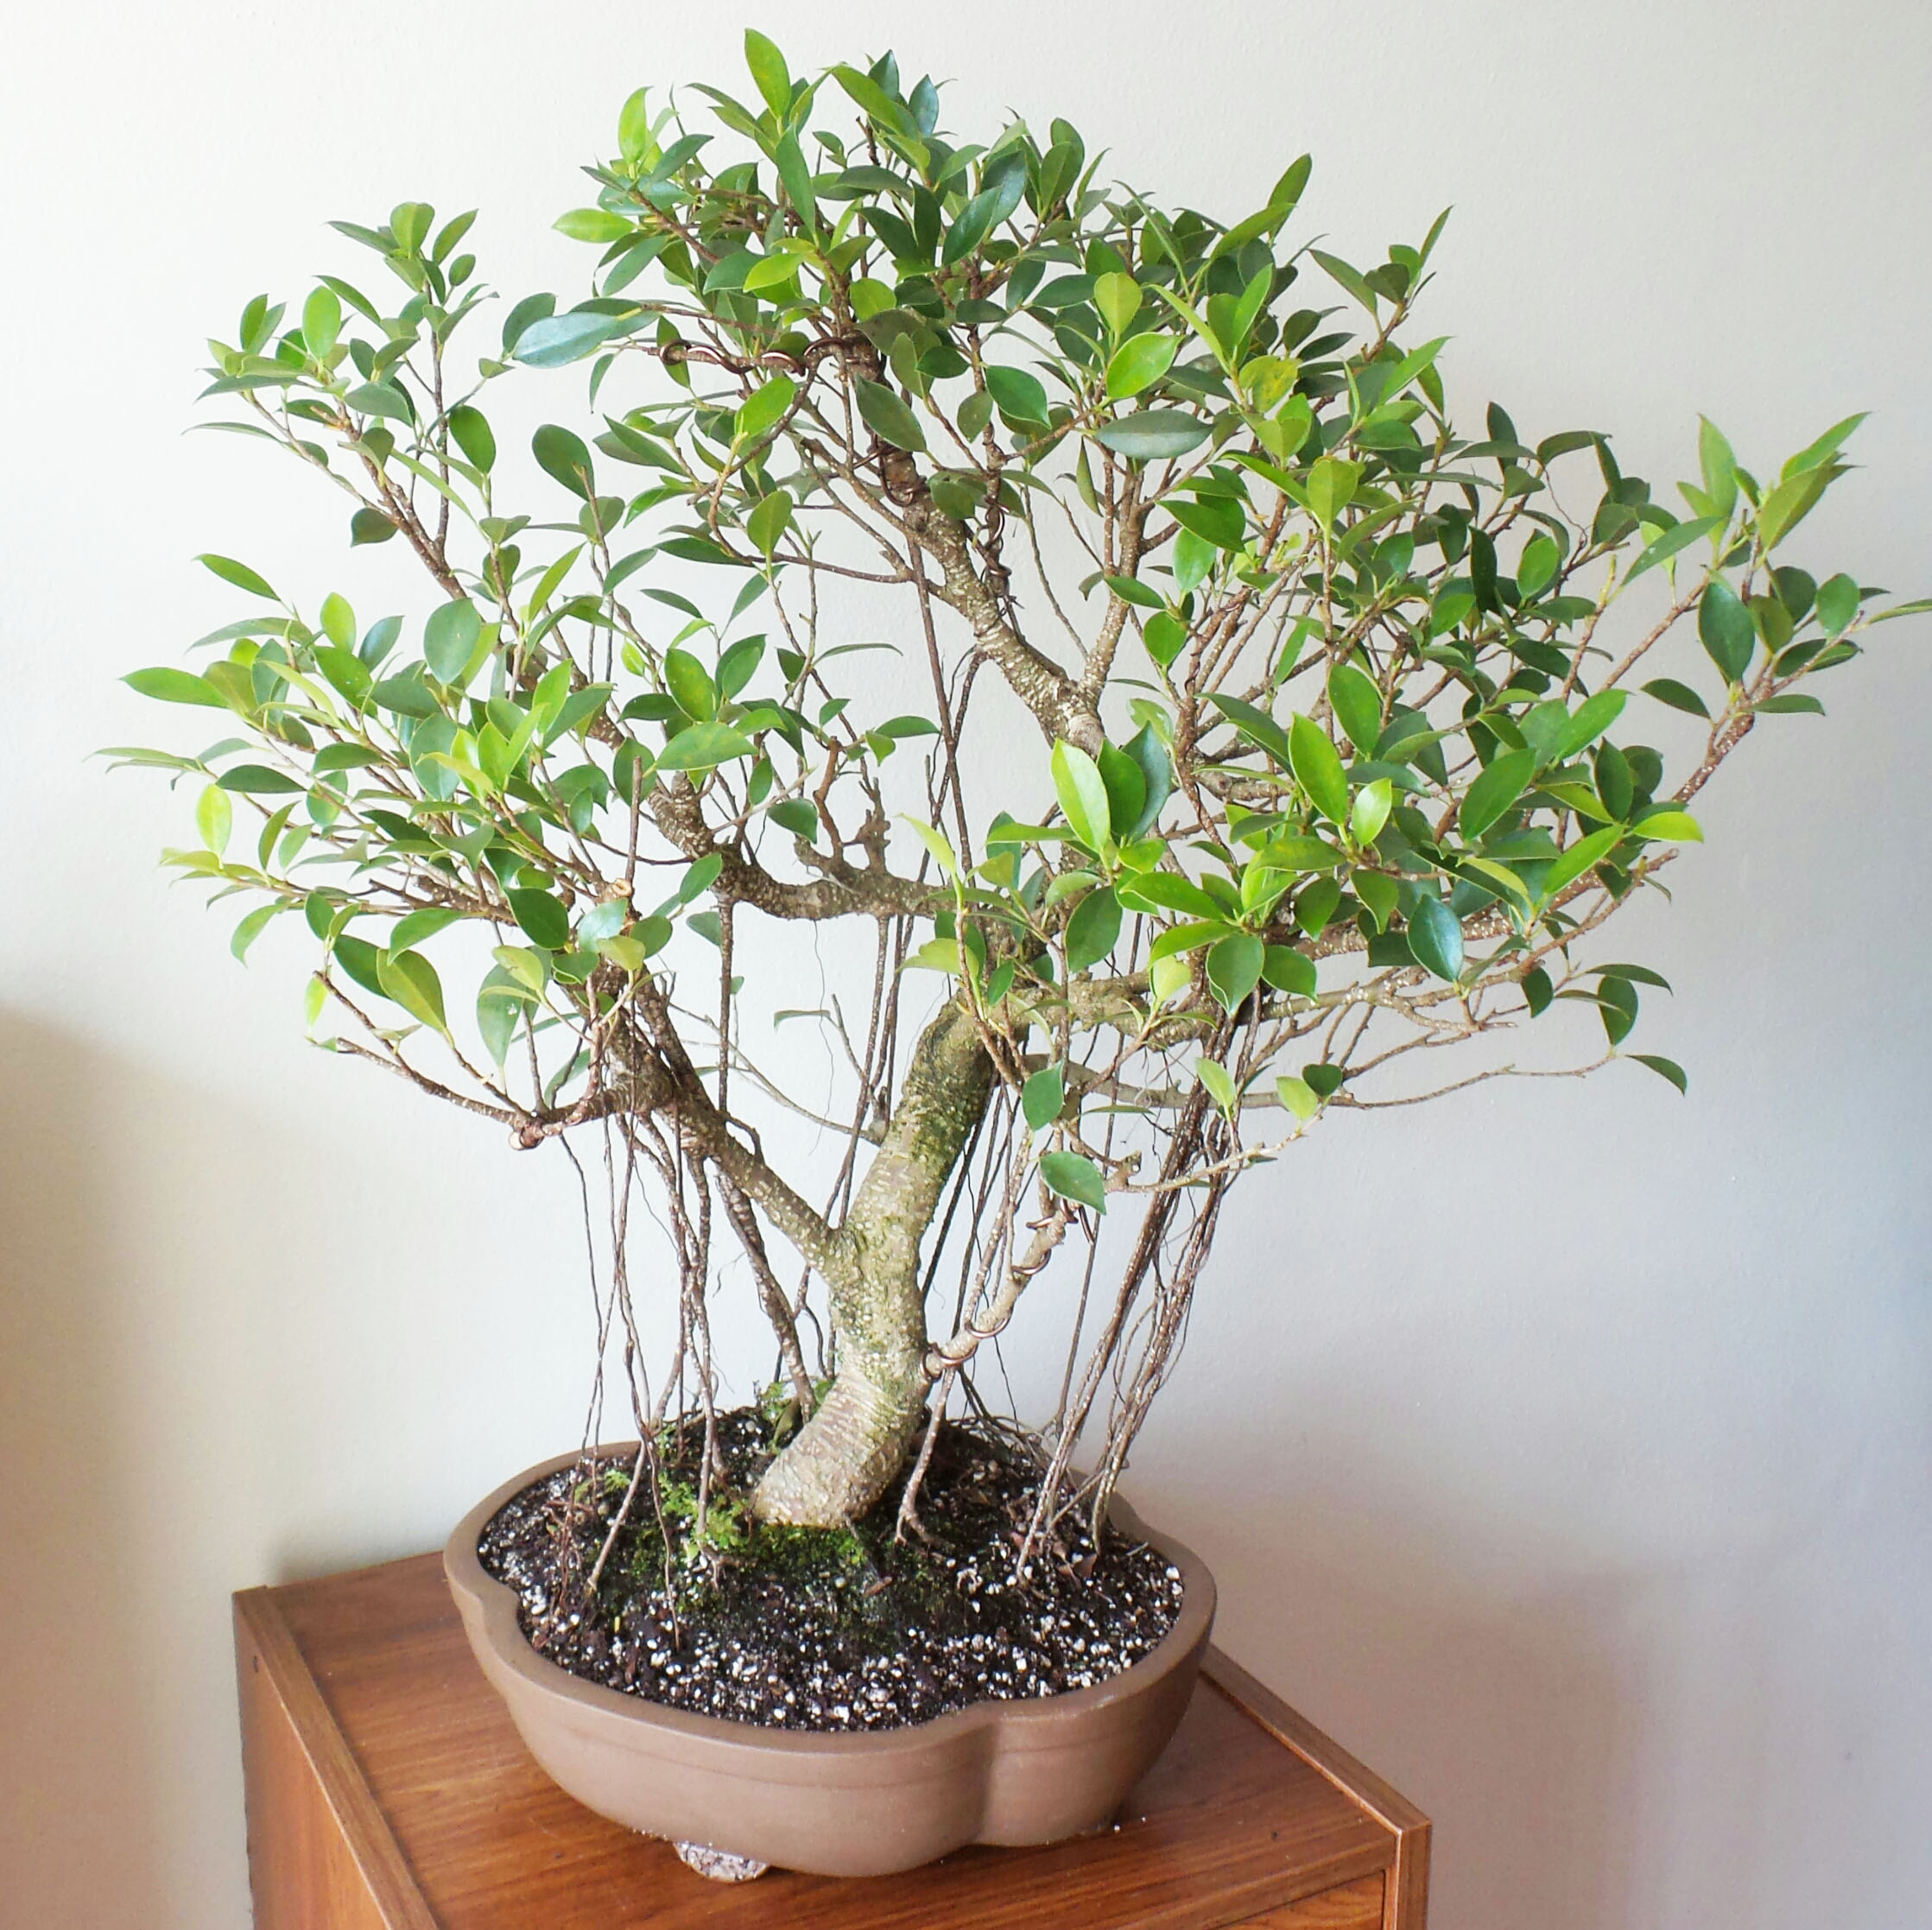 Bonsai ficus be equipped japanese bonsai be equipped best ficus for bonsai be equipped chinese juniper bonsai